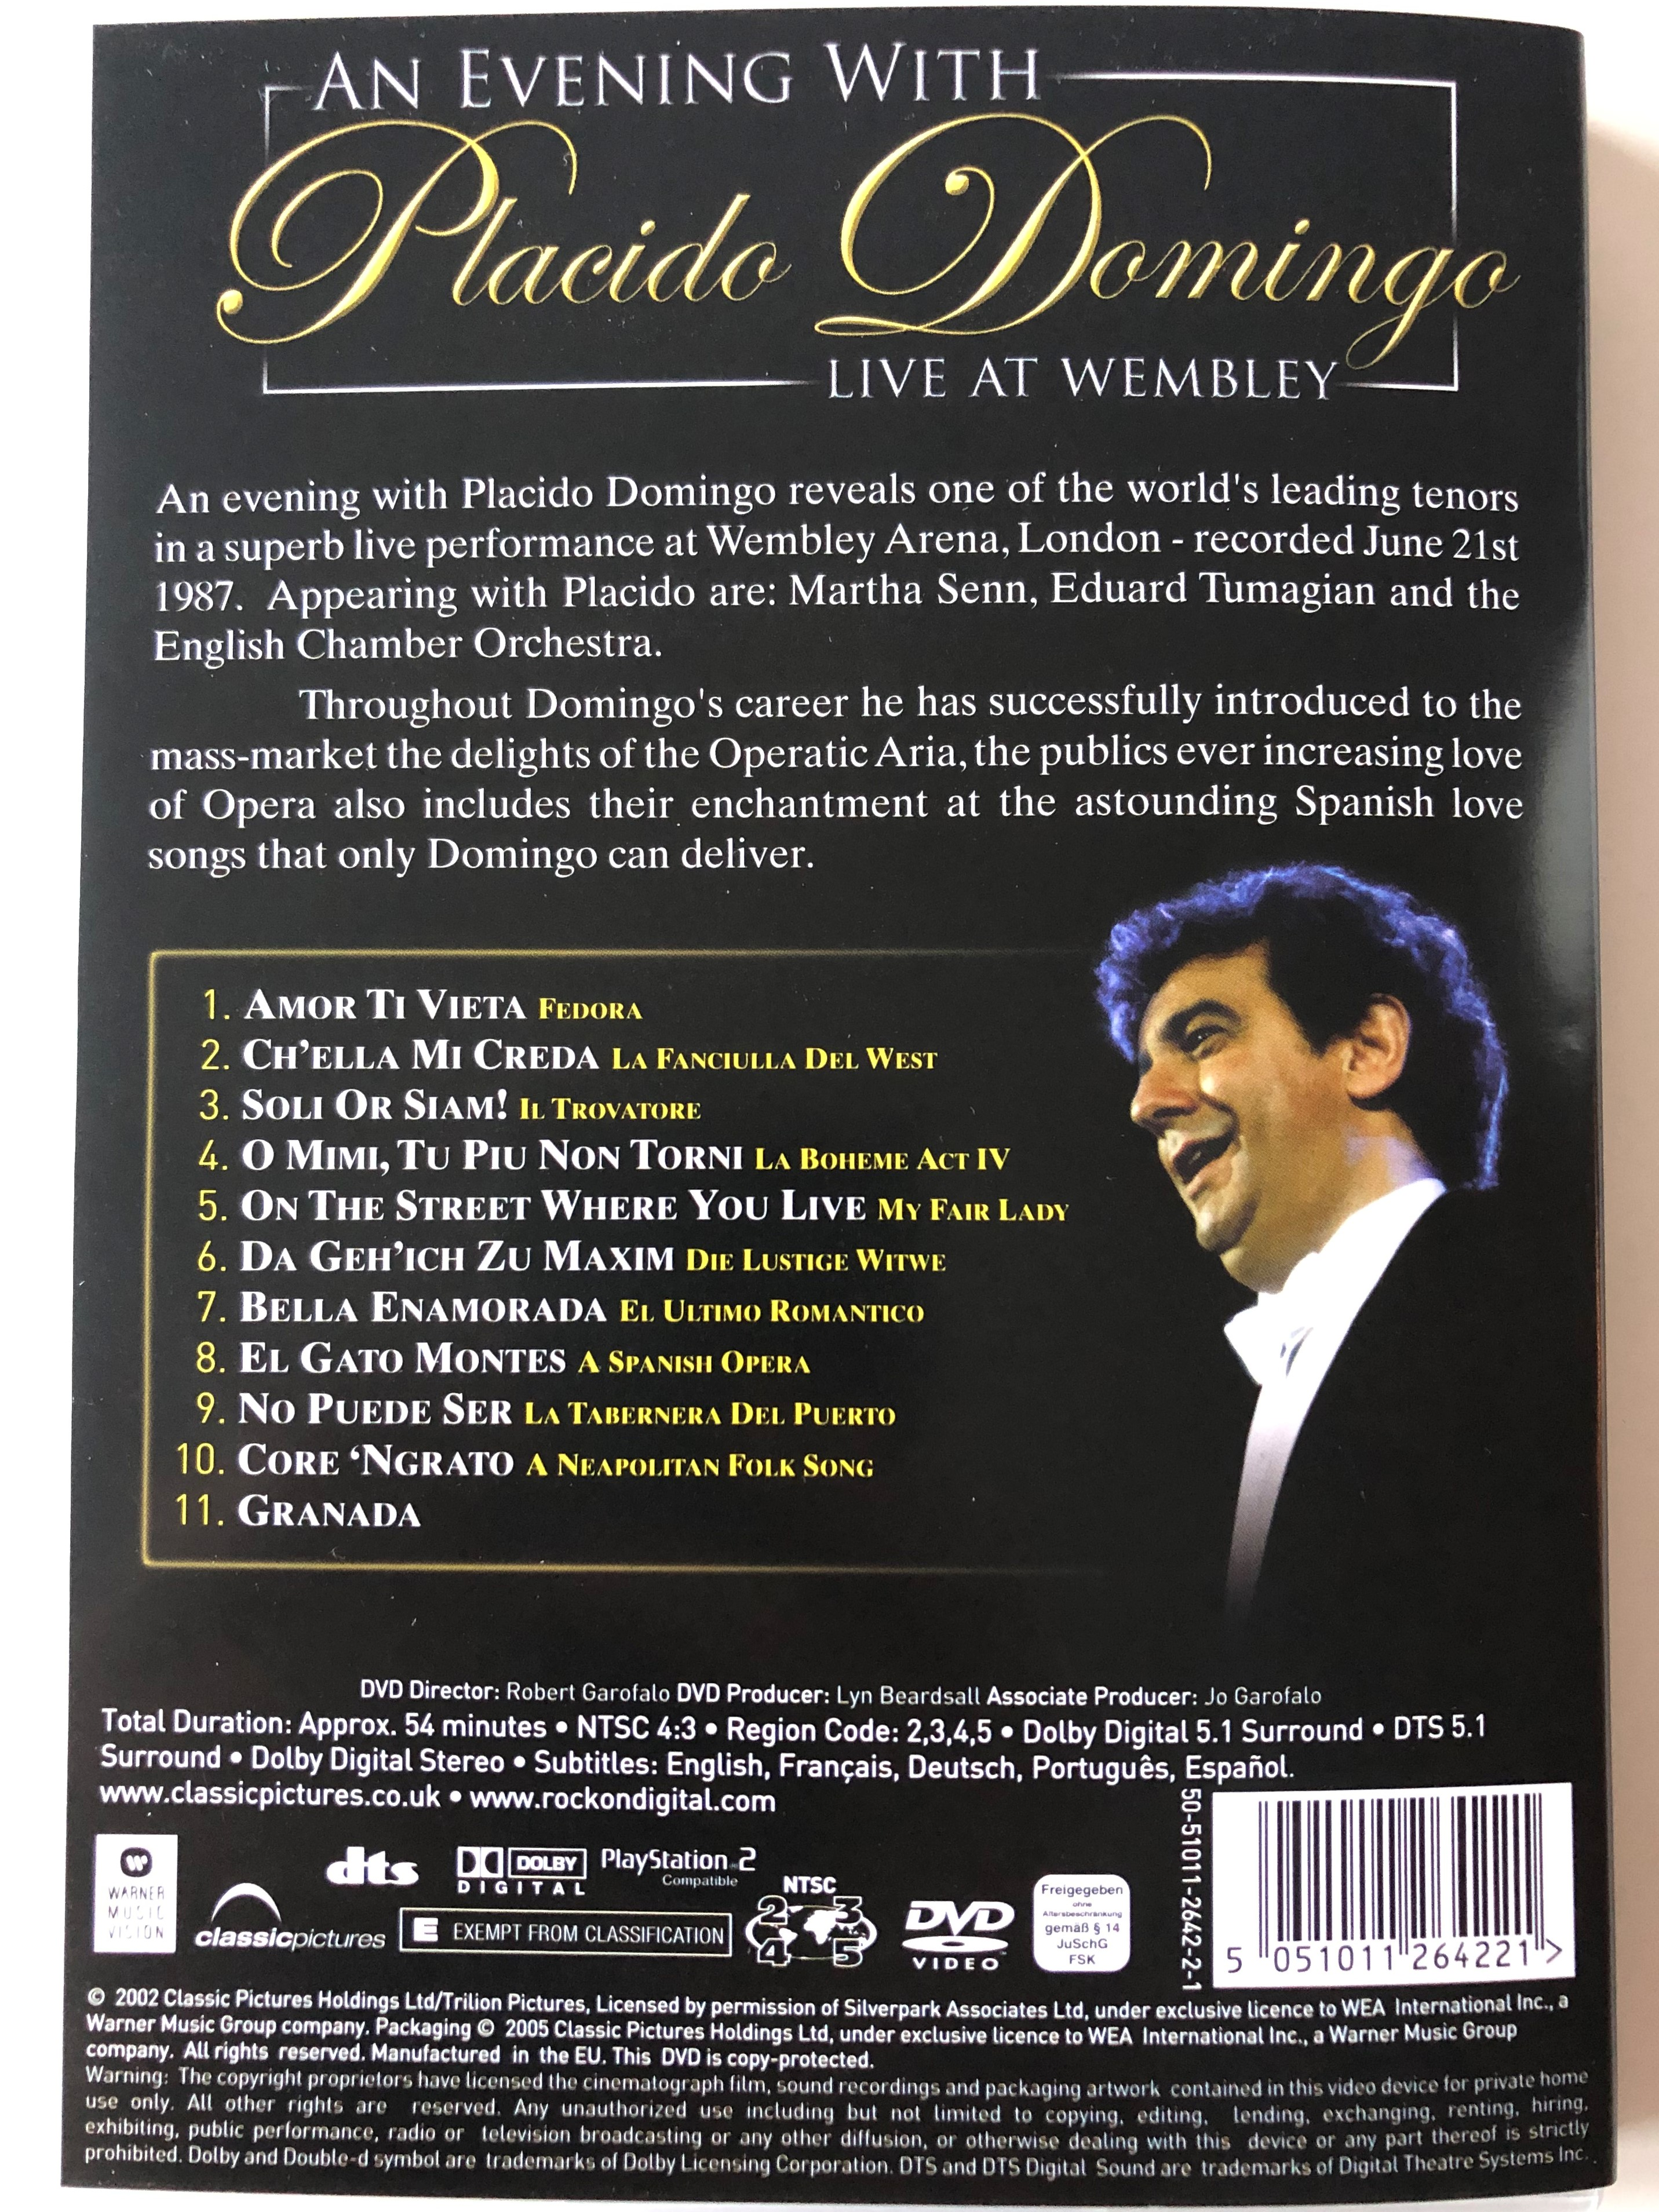 an-evening-with-placido-domingo-dvd-2002-live-at-wembley-4.jpg